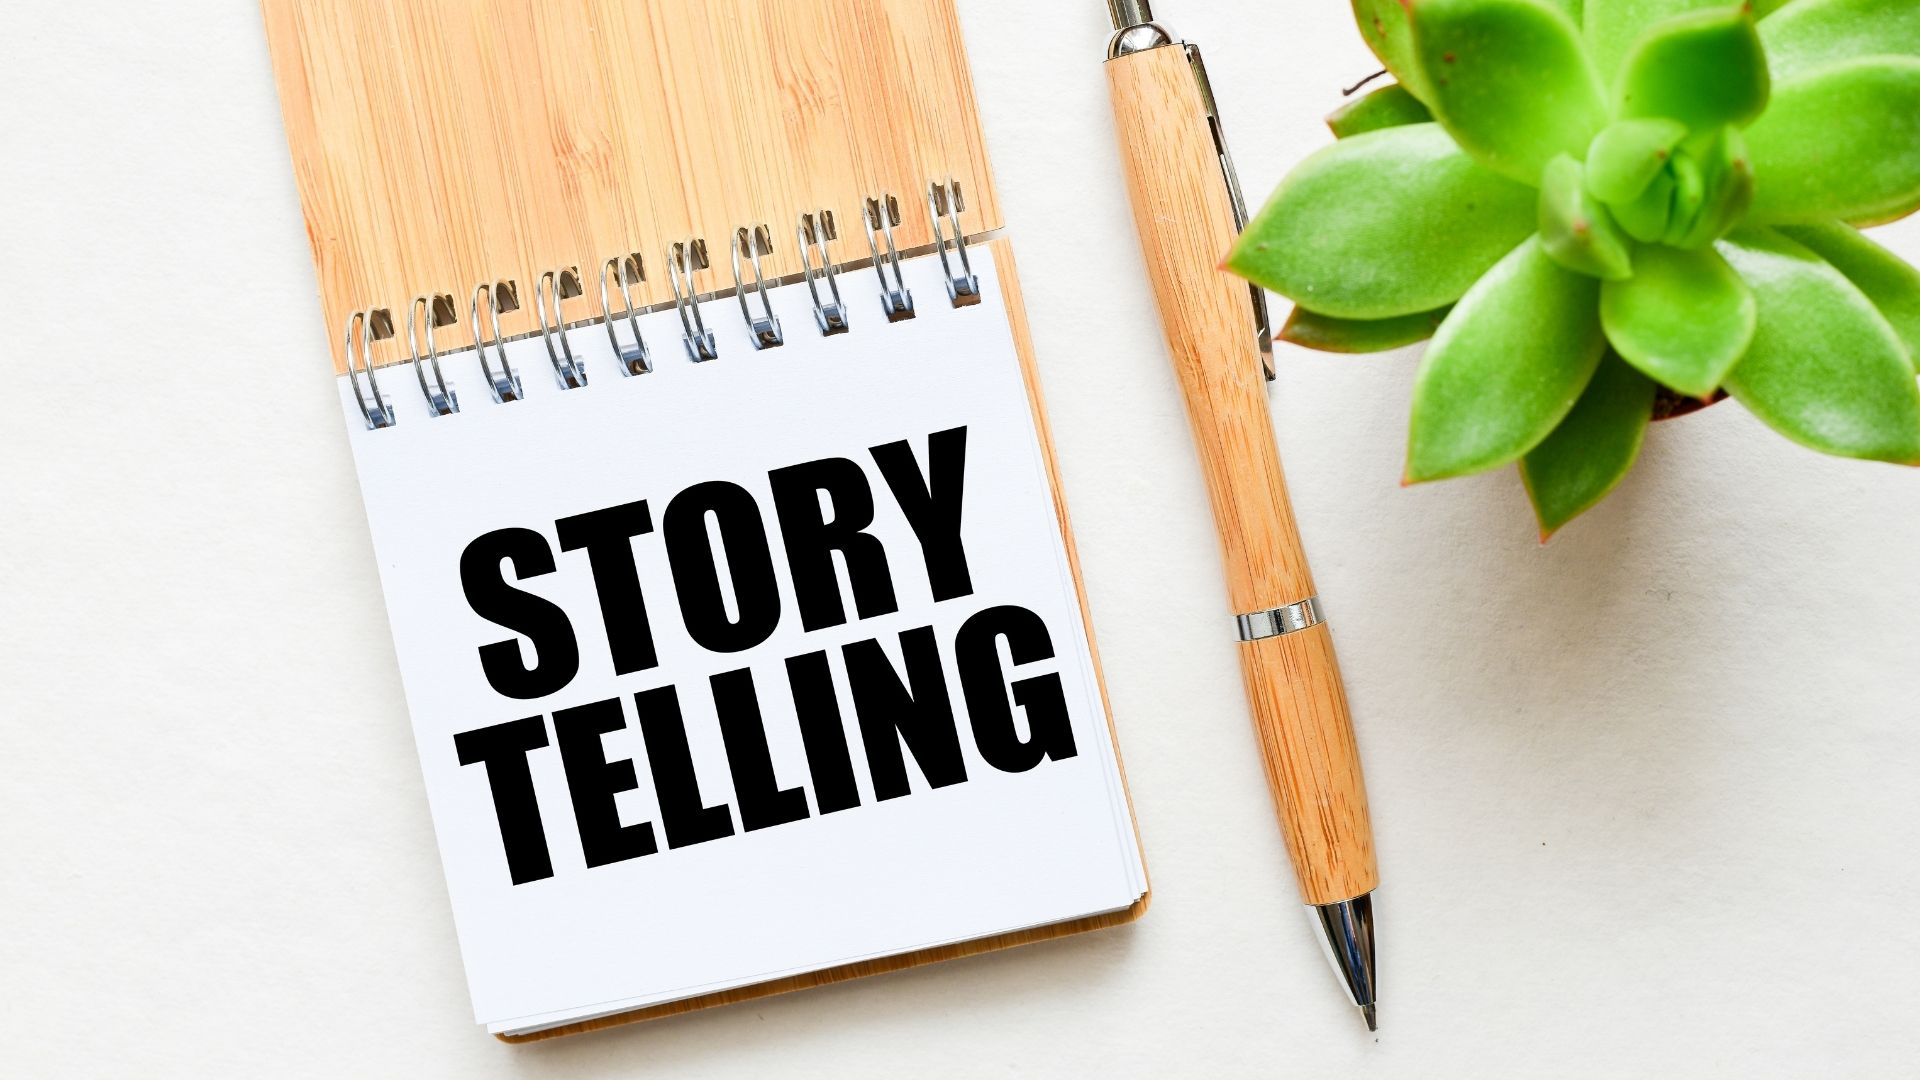 Story telling on a notepad